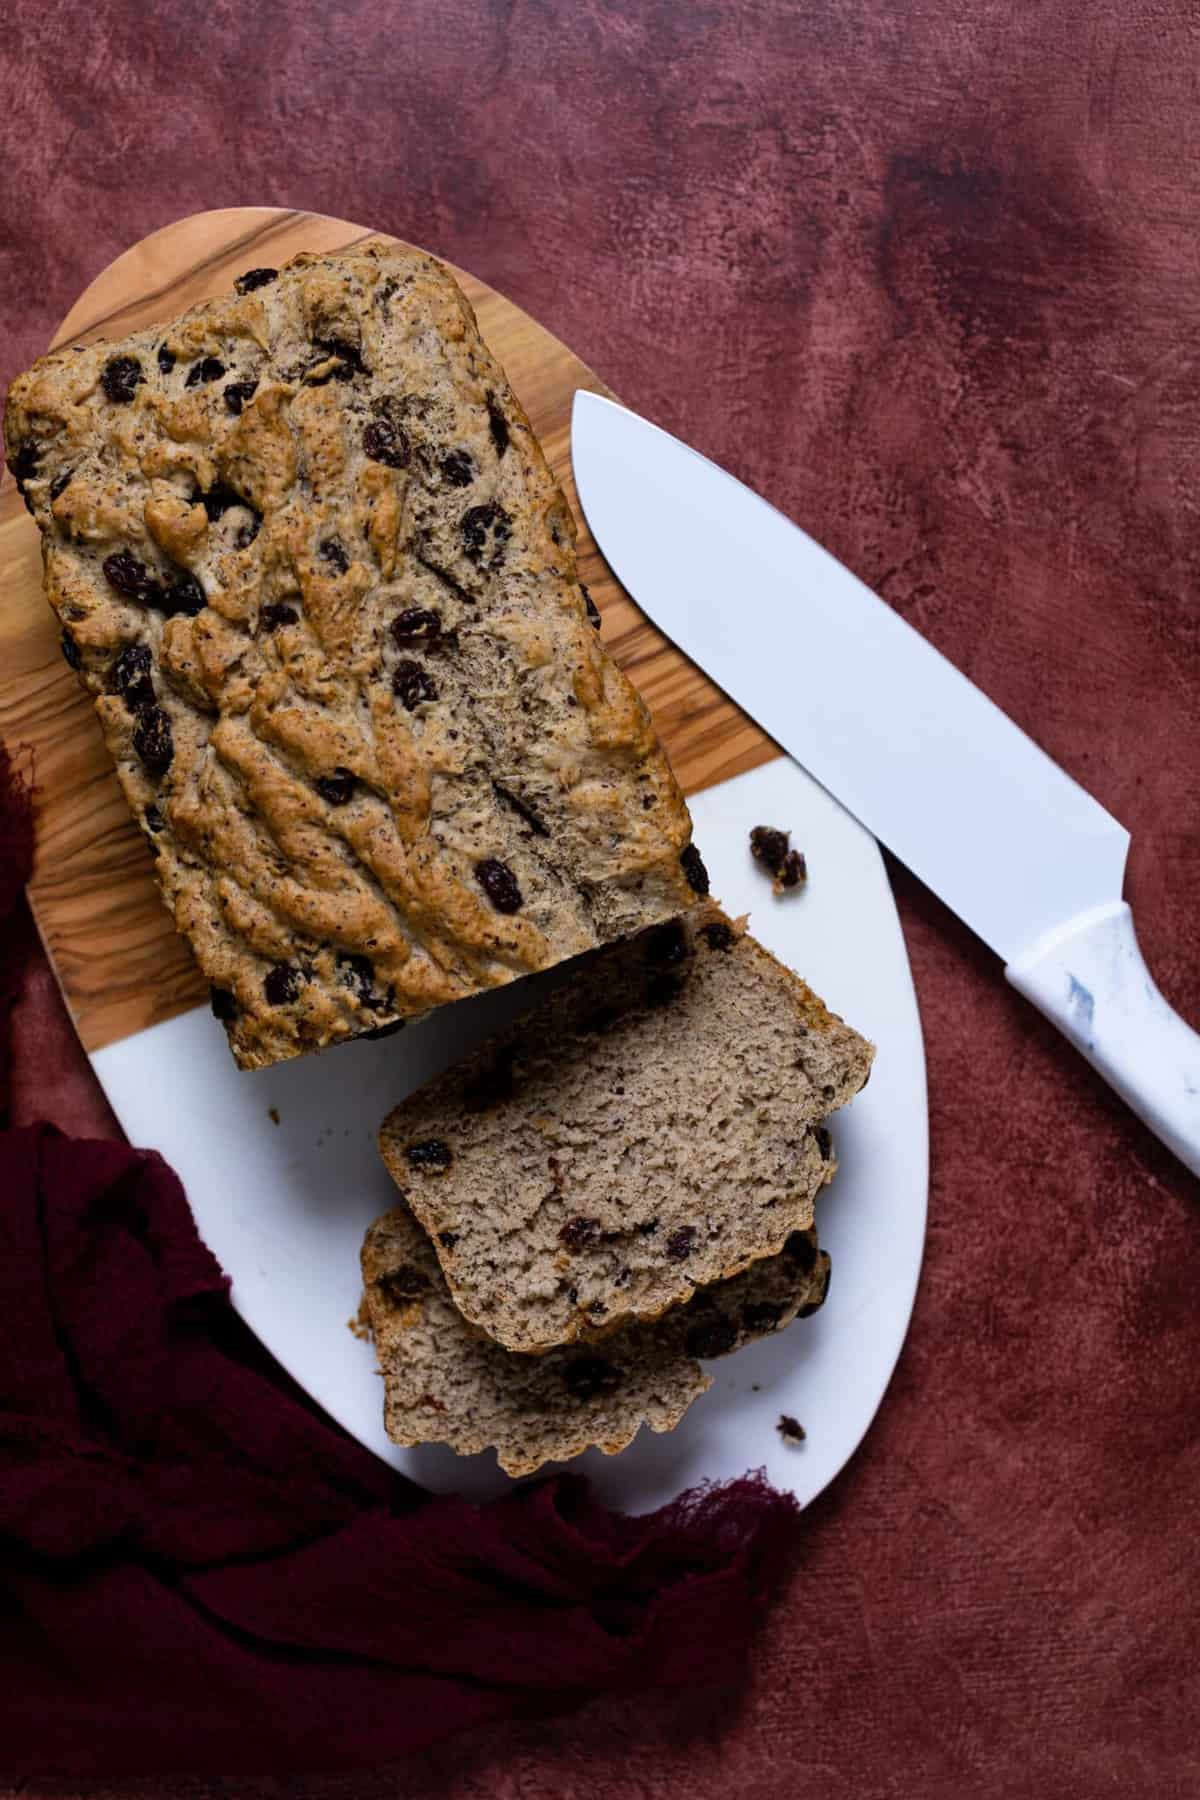 Homemade Rum Raisin Bread on a cutting board with a white knife